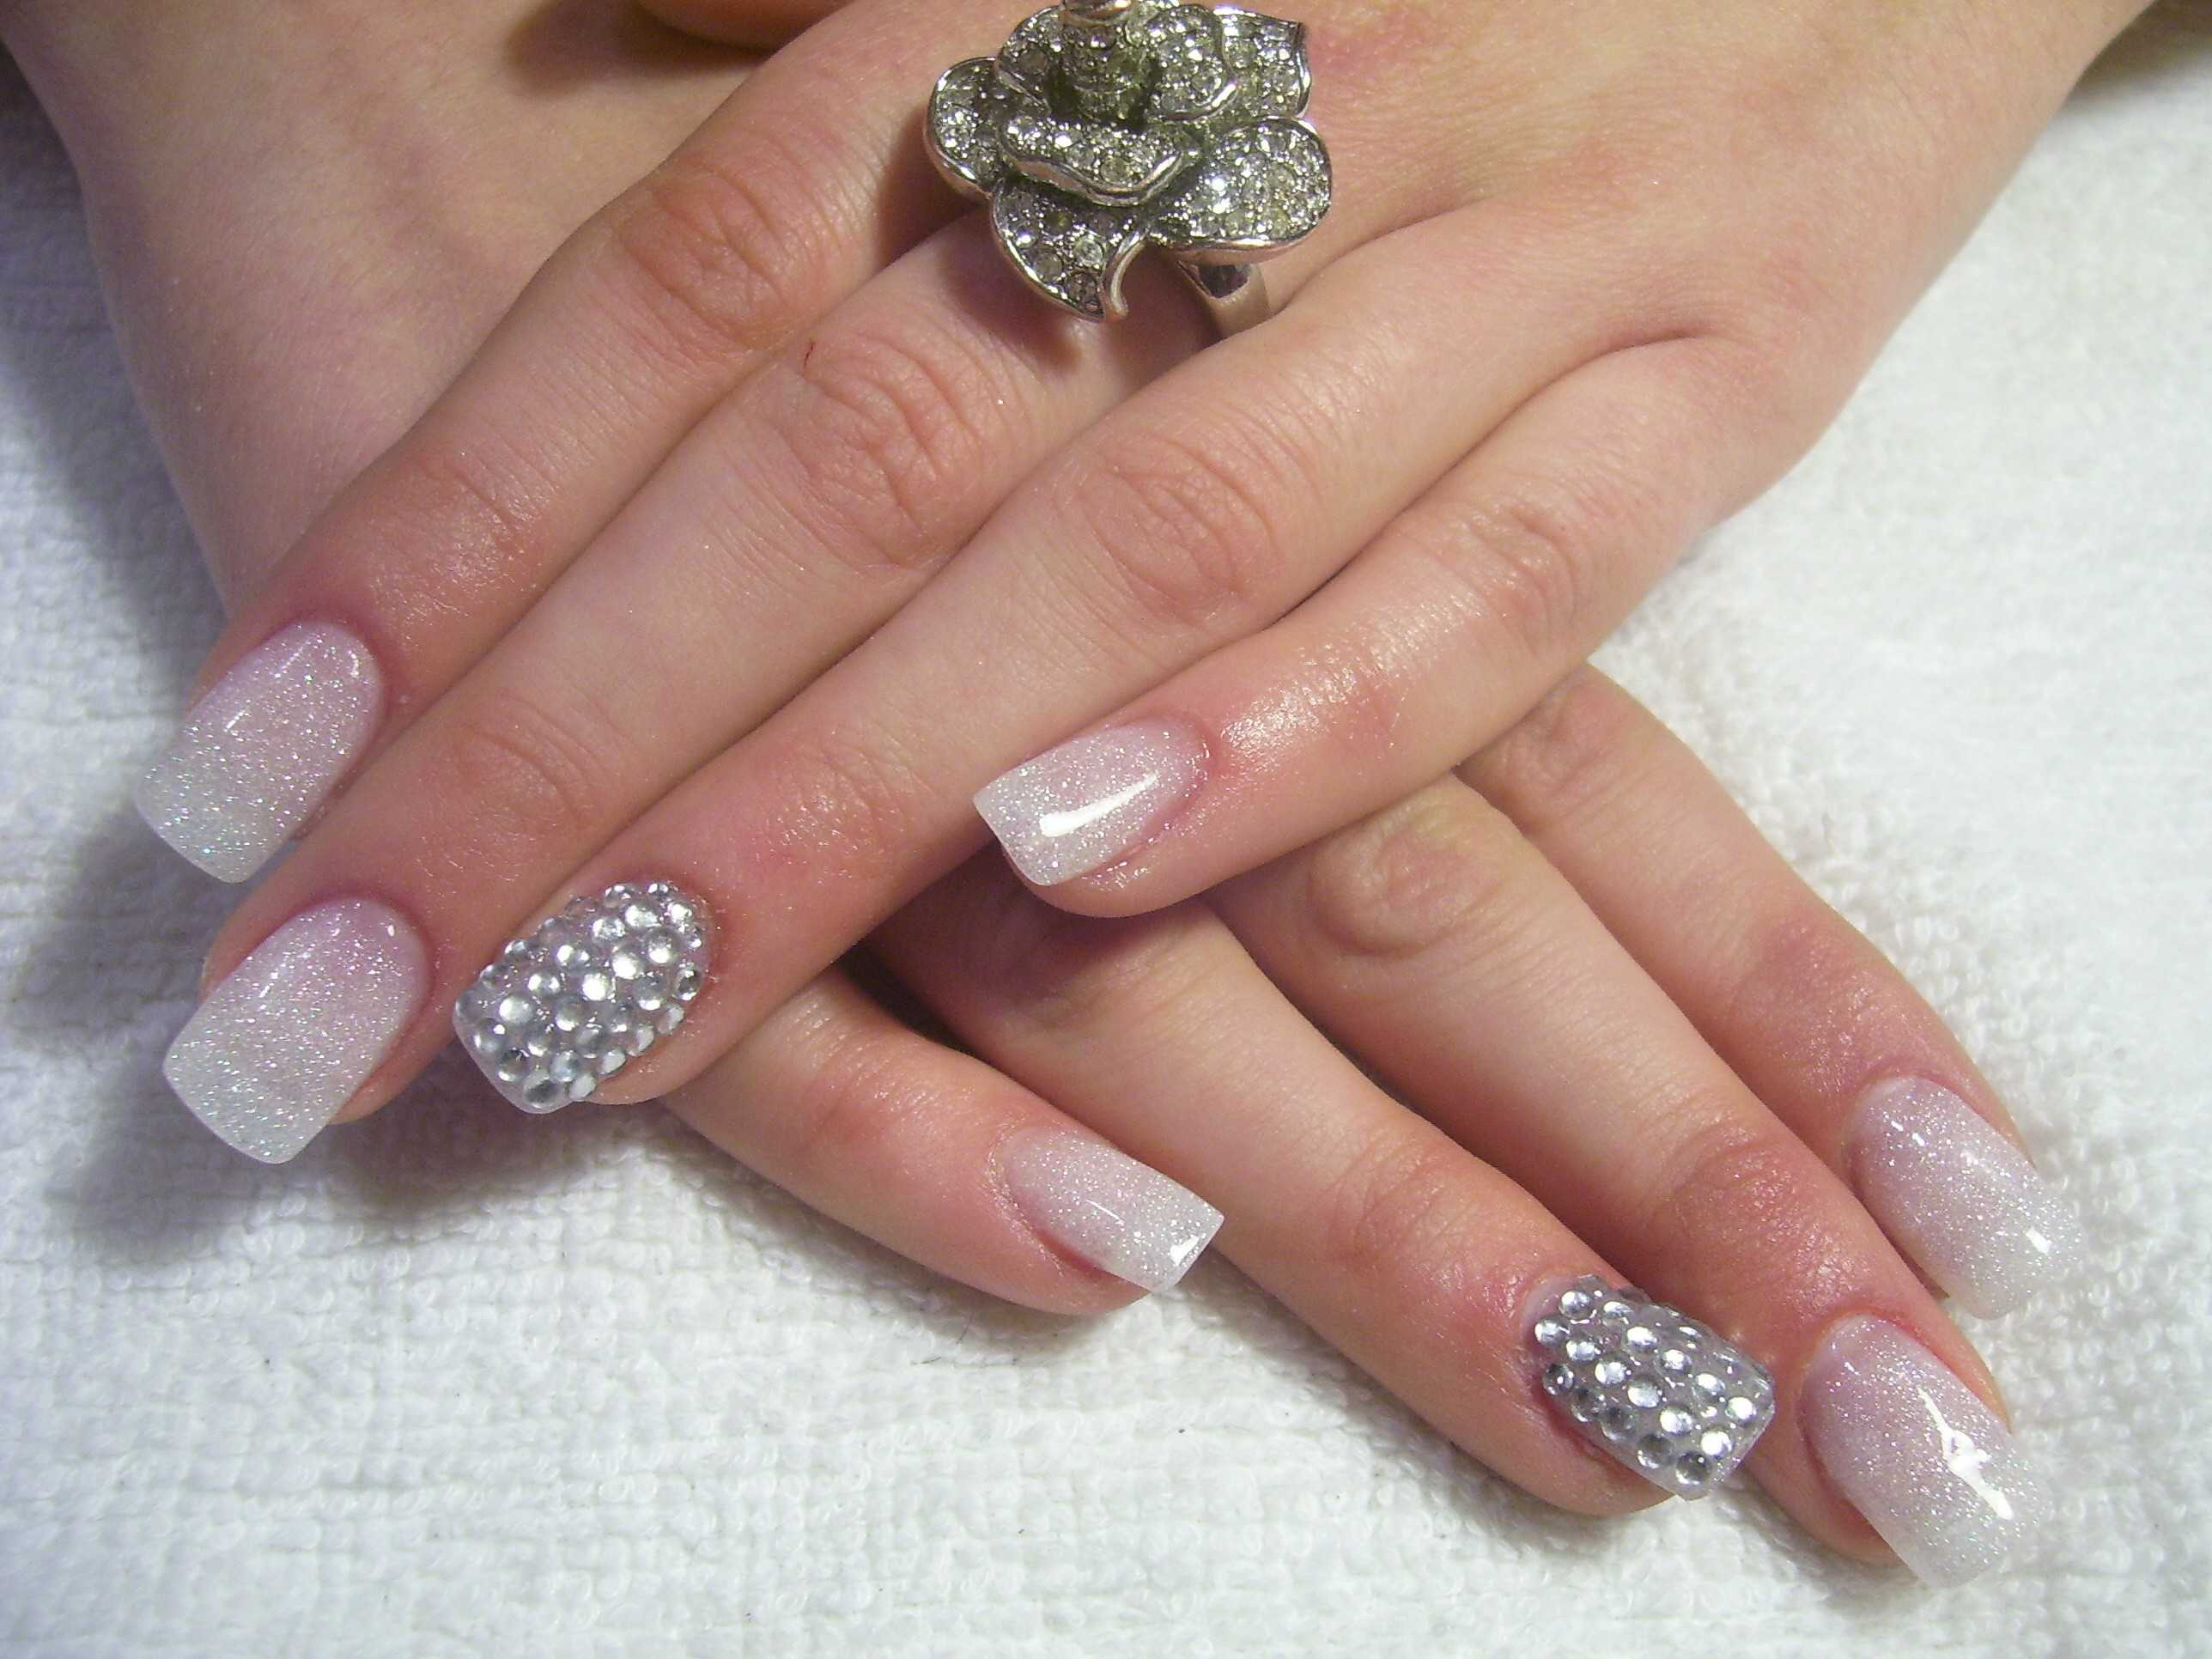 Nail Designs With Diamonds : 5 Nail Designs With Diamonds | Woman ...